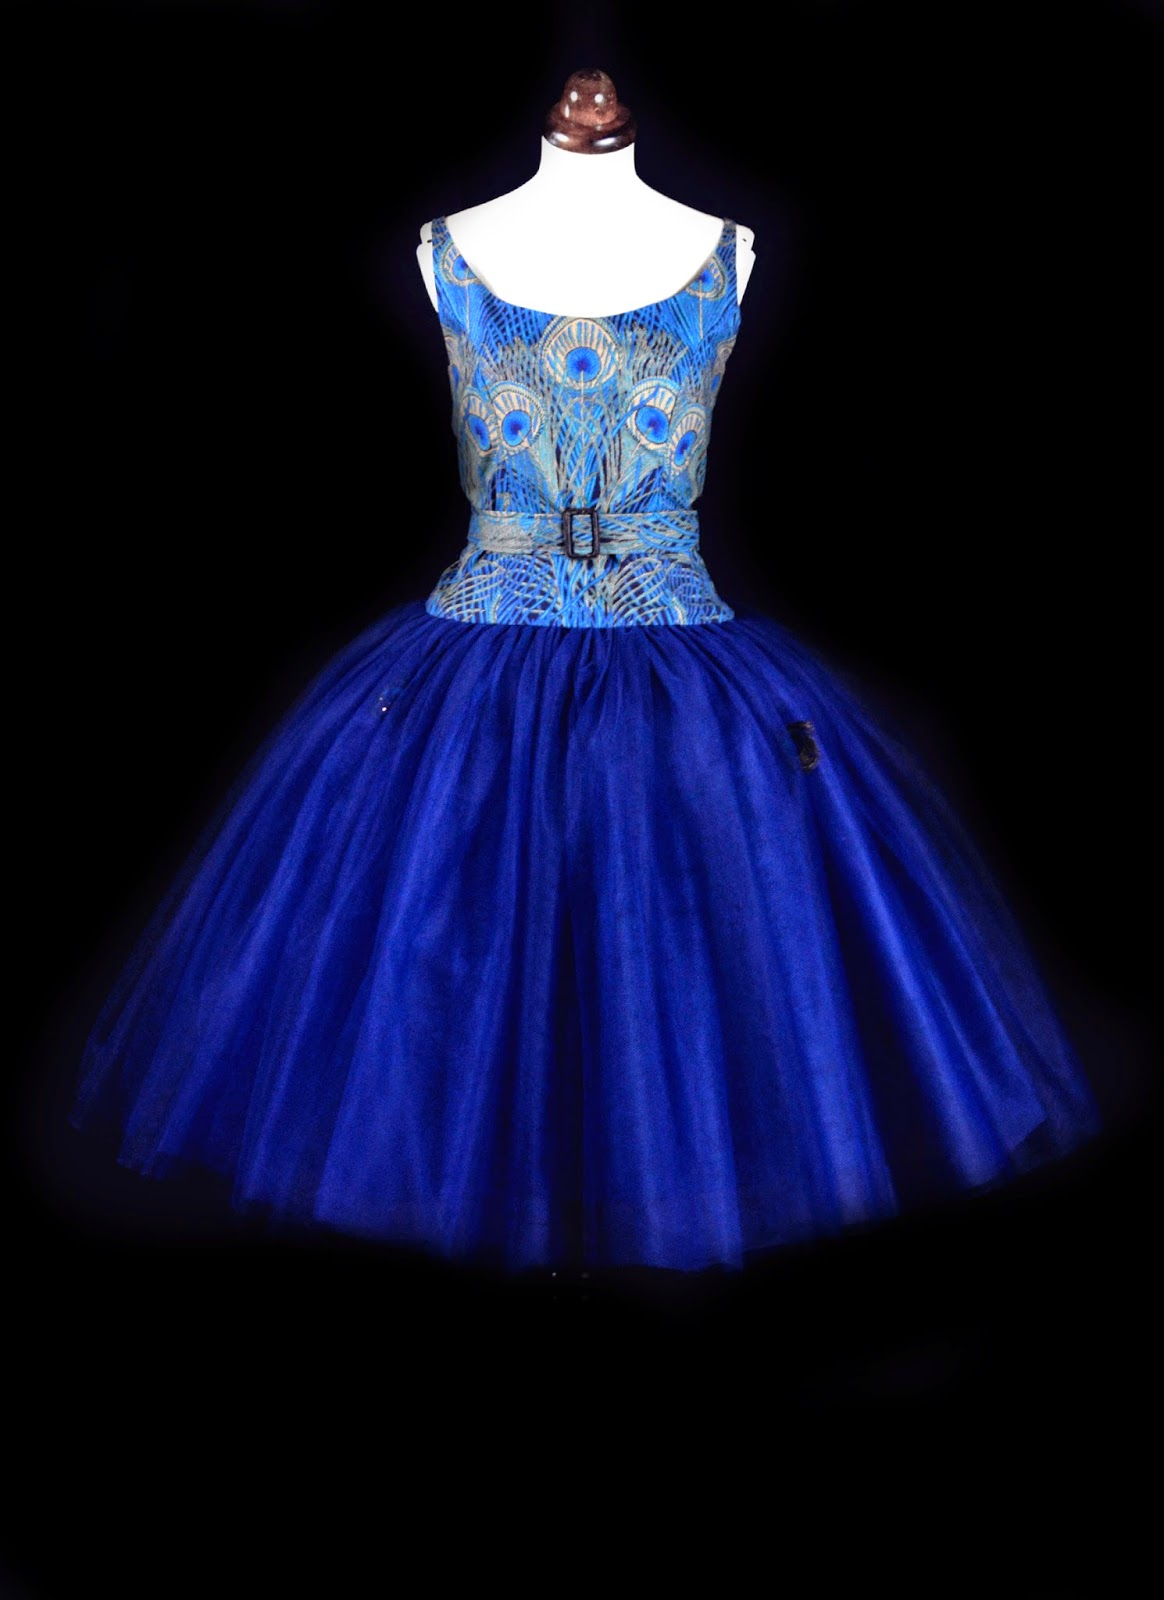 Alexandra King Pavo Ballet Dress